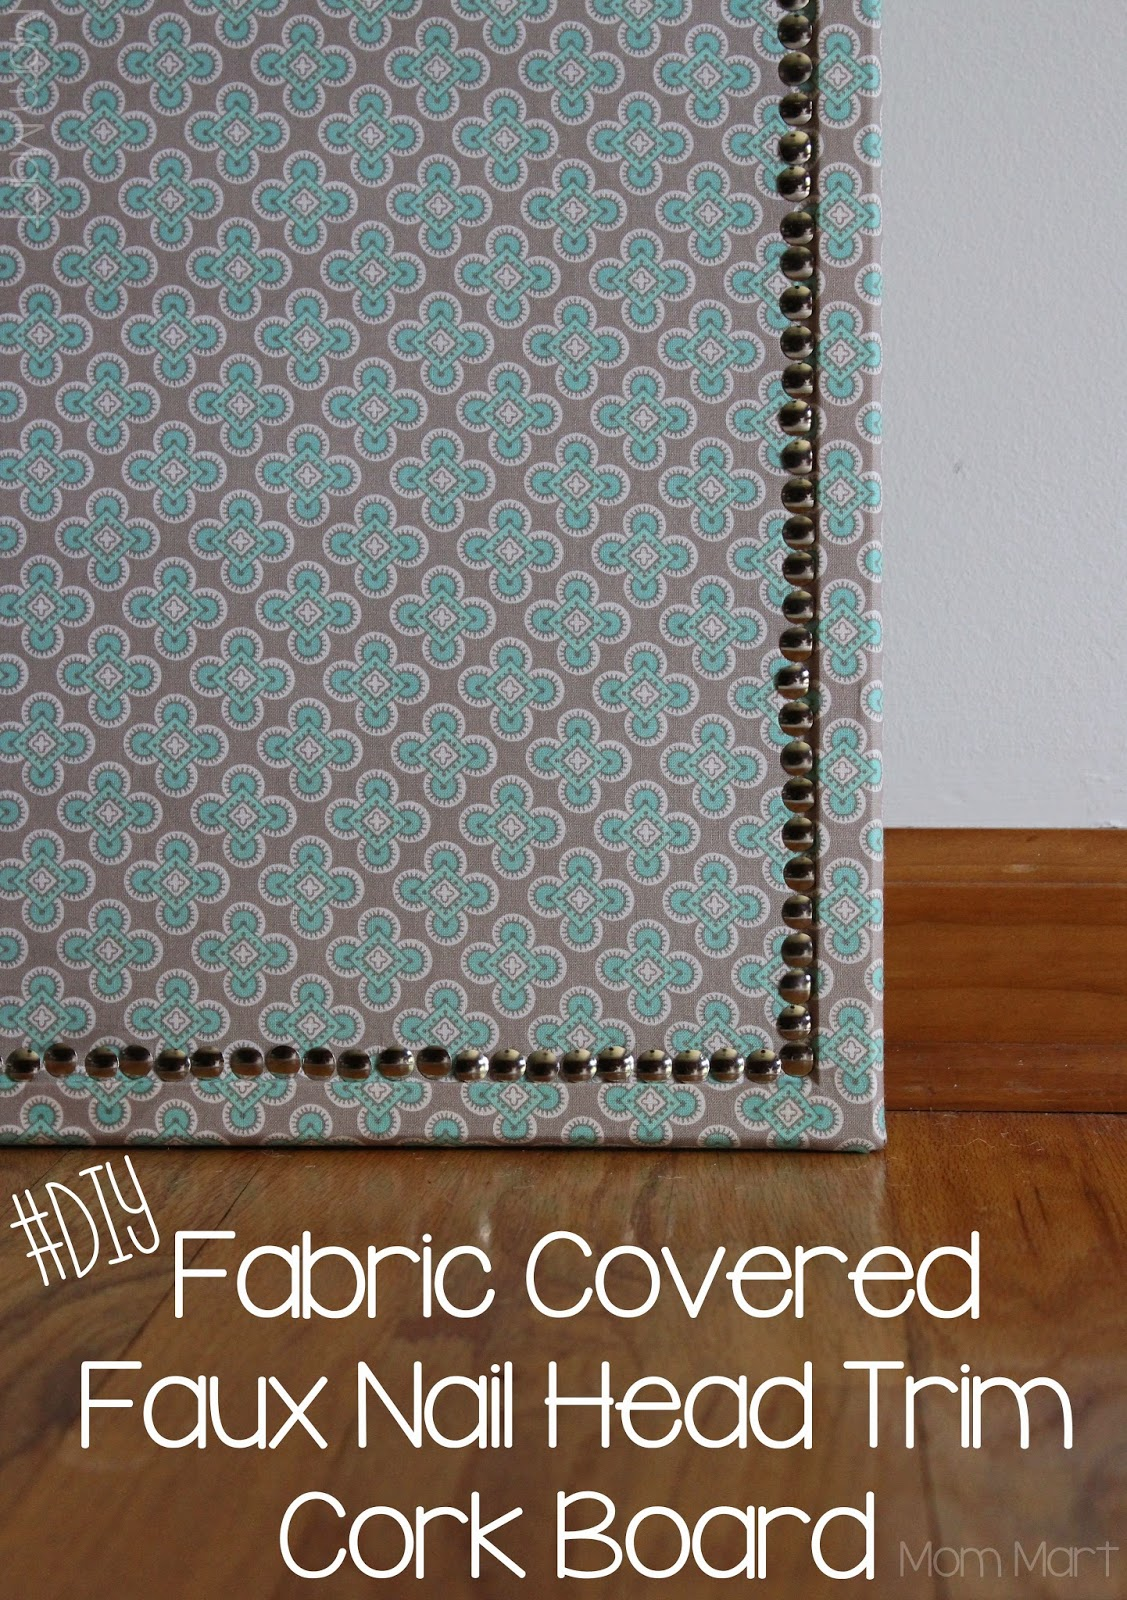 DIY fabric covered cork board with a faux nail head trim #DIY #HomeDecor